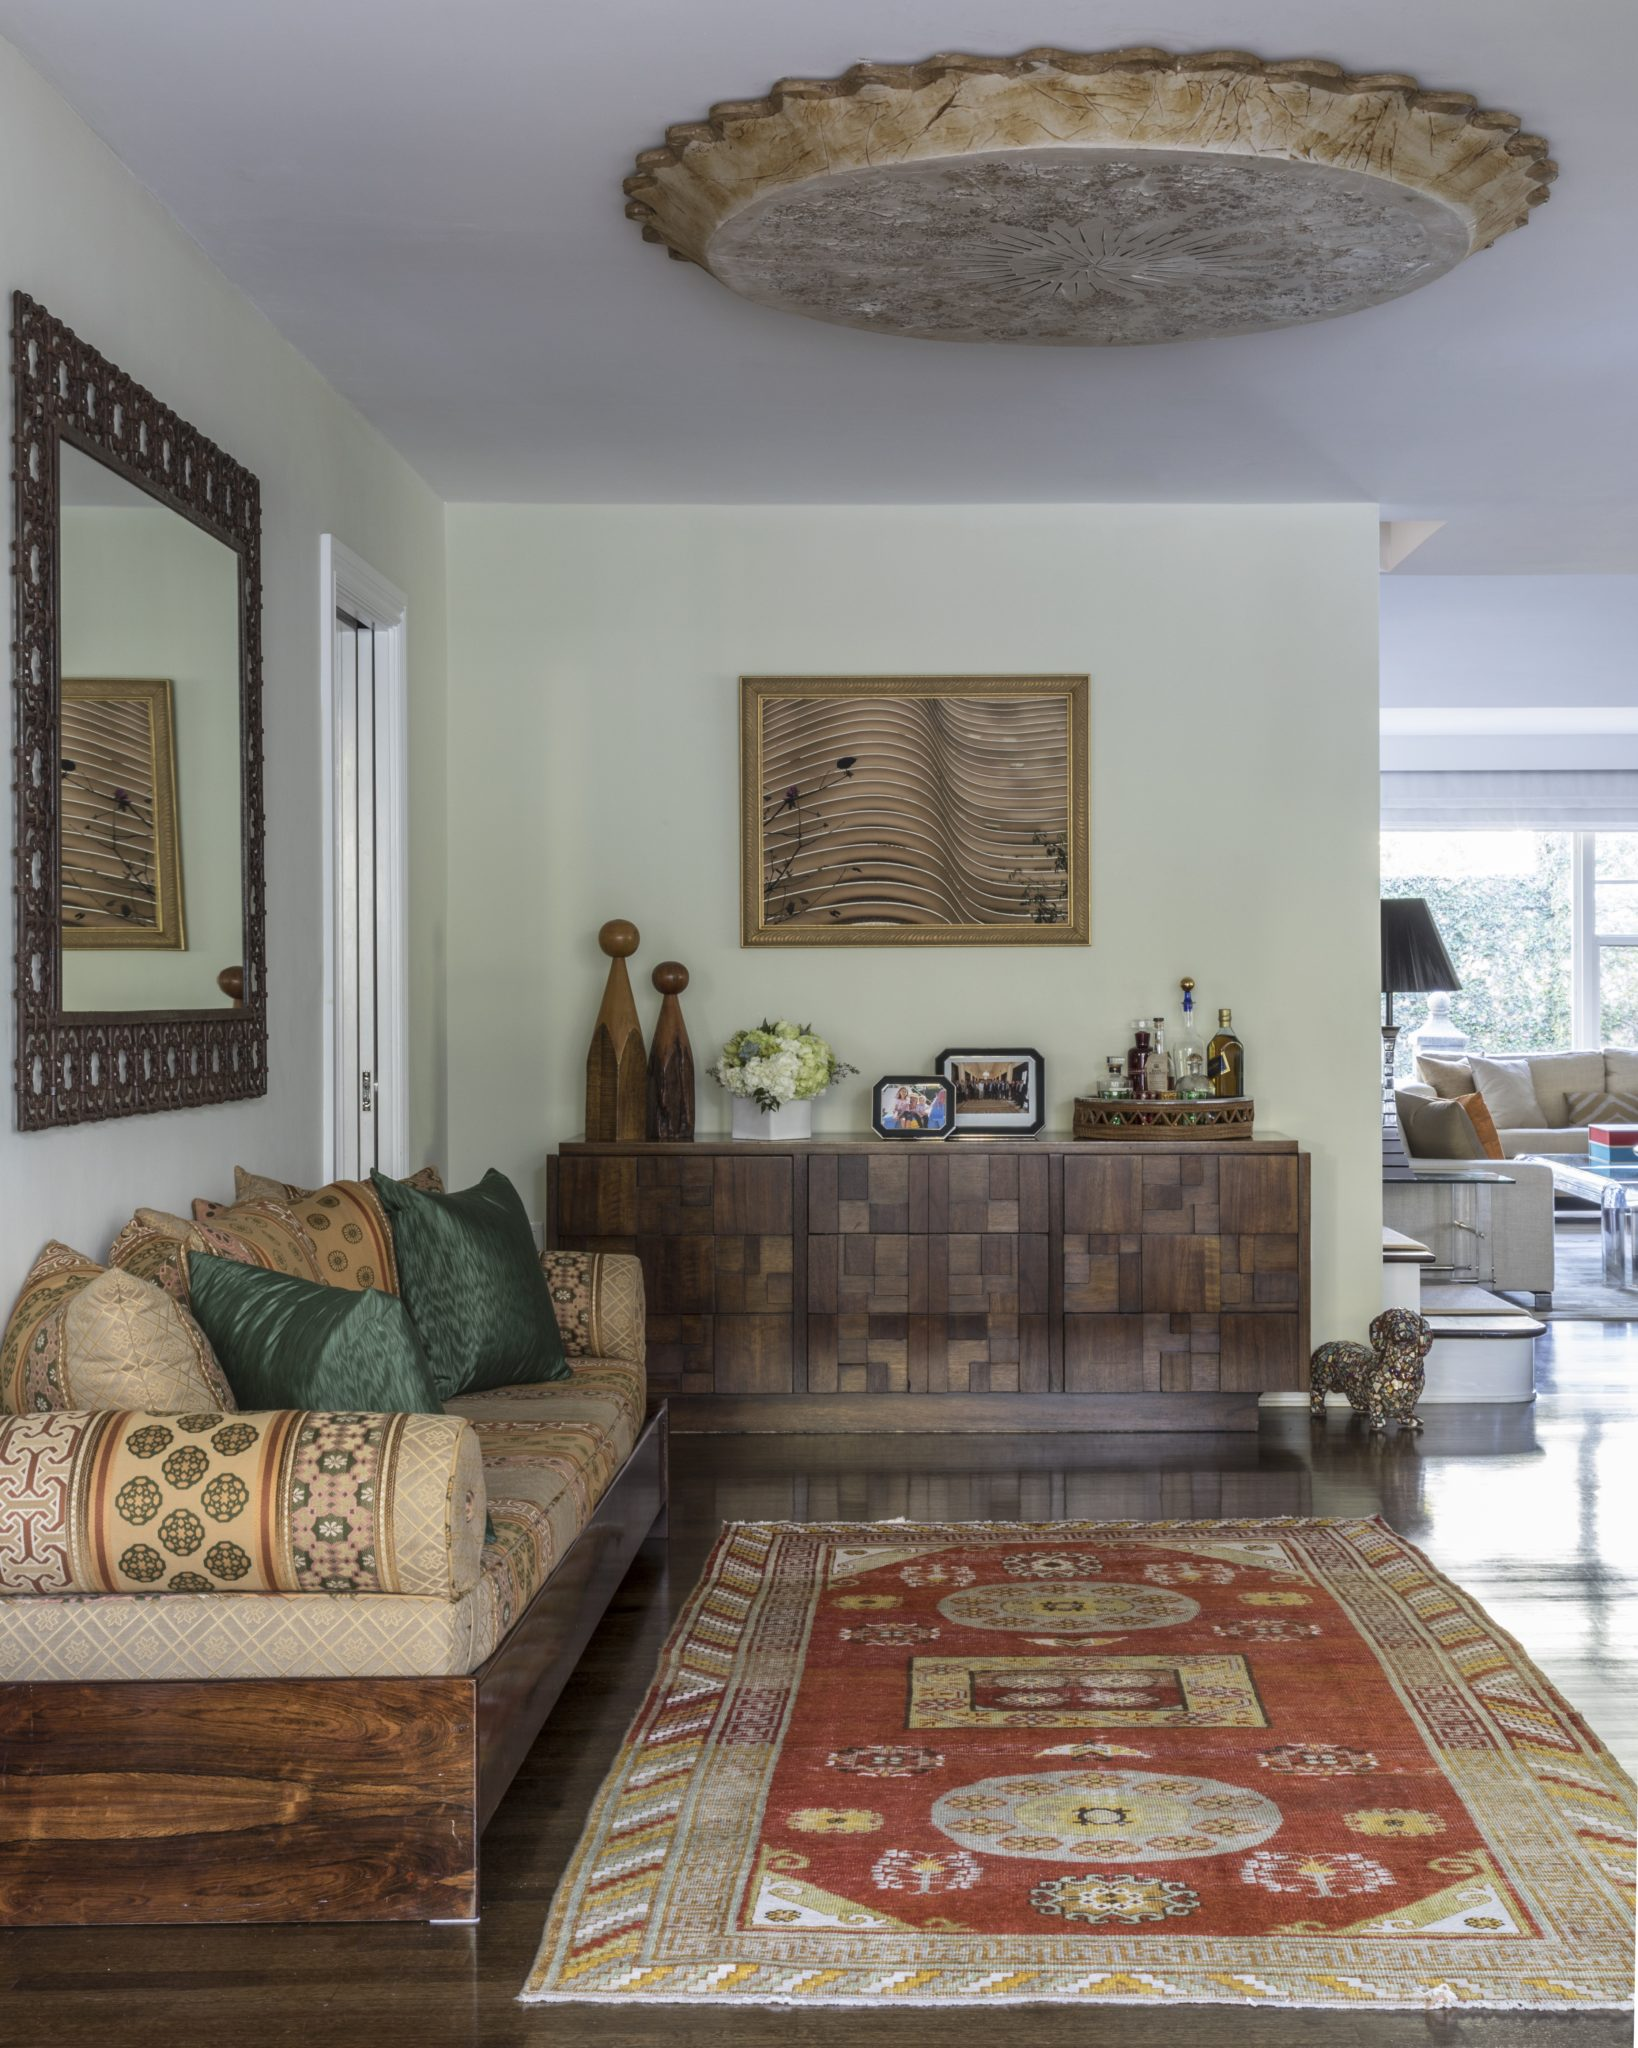 Family room with Moroccan mirror, vintage buffet and bench upholstered in Moroccan-style fabric. By Michele Safra Interiors